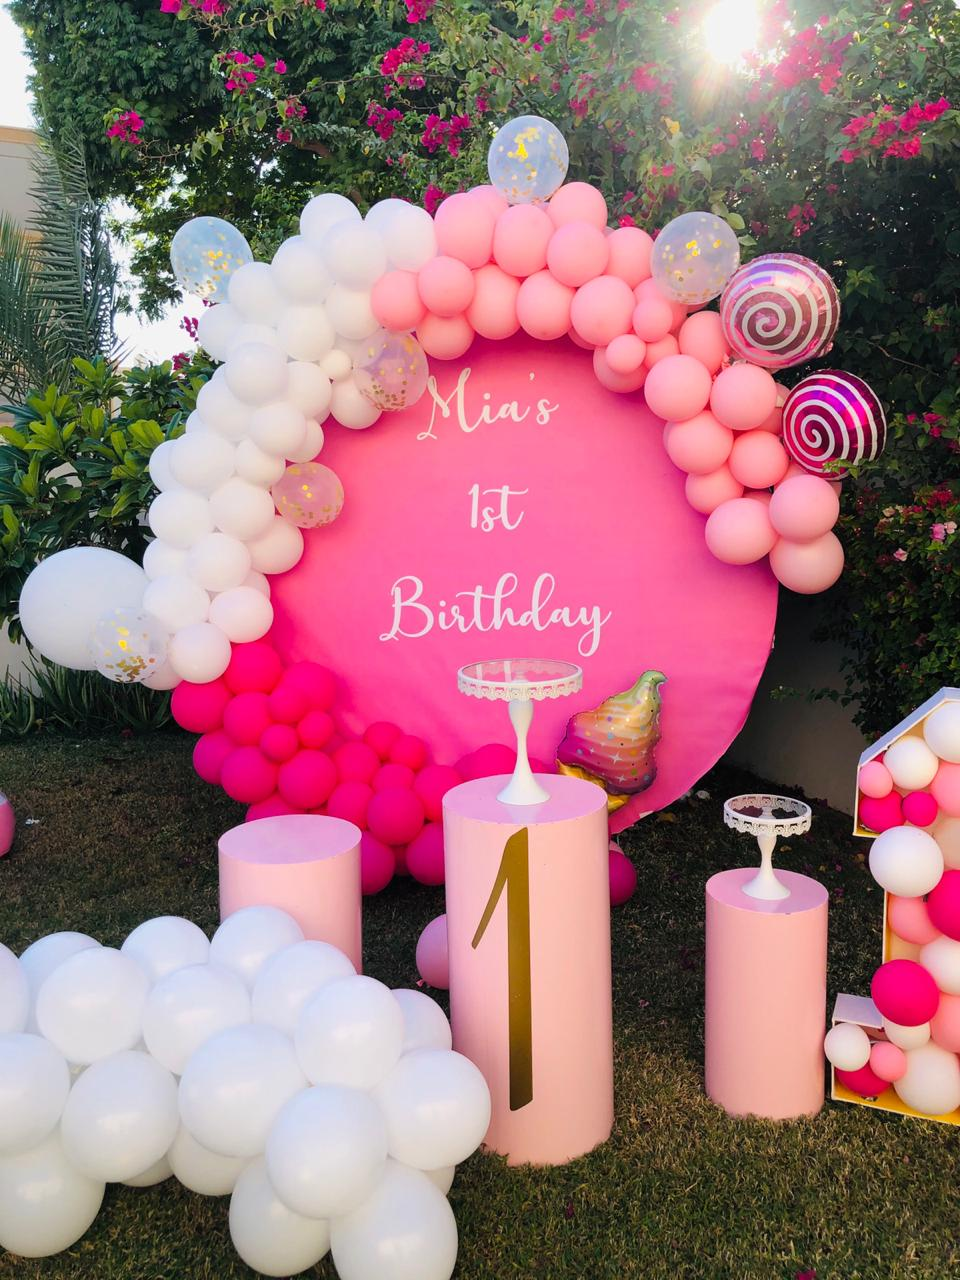 Candle decoration for 1st birthday of a girl baby